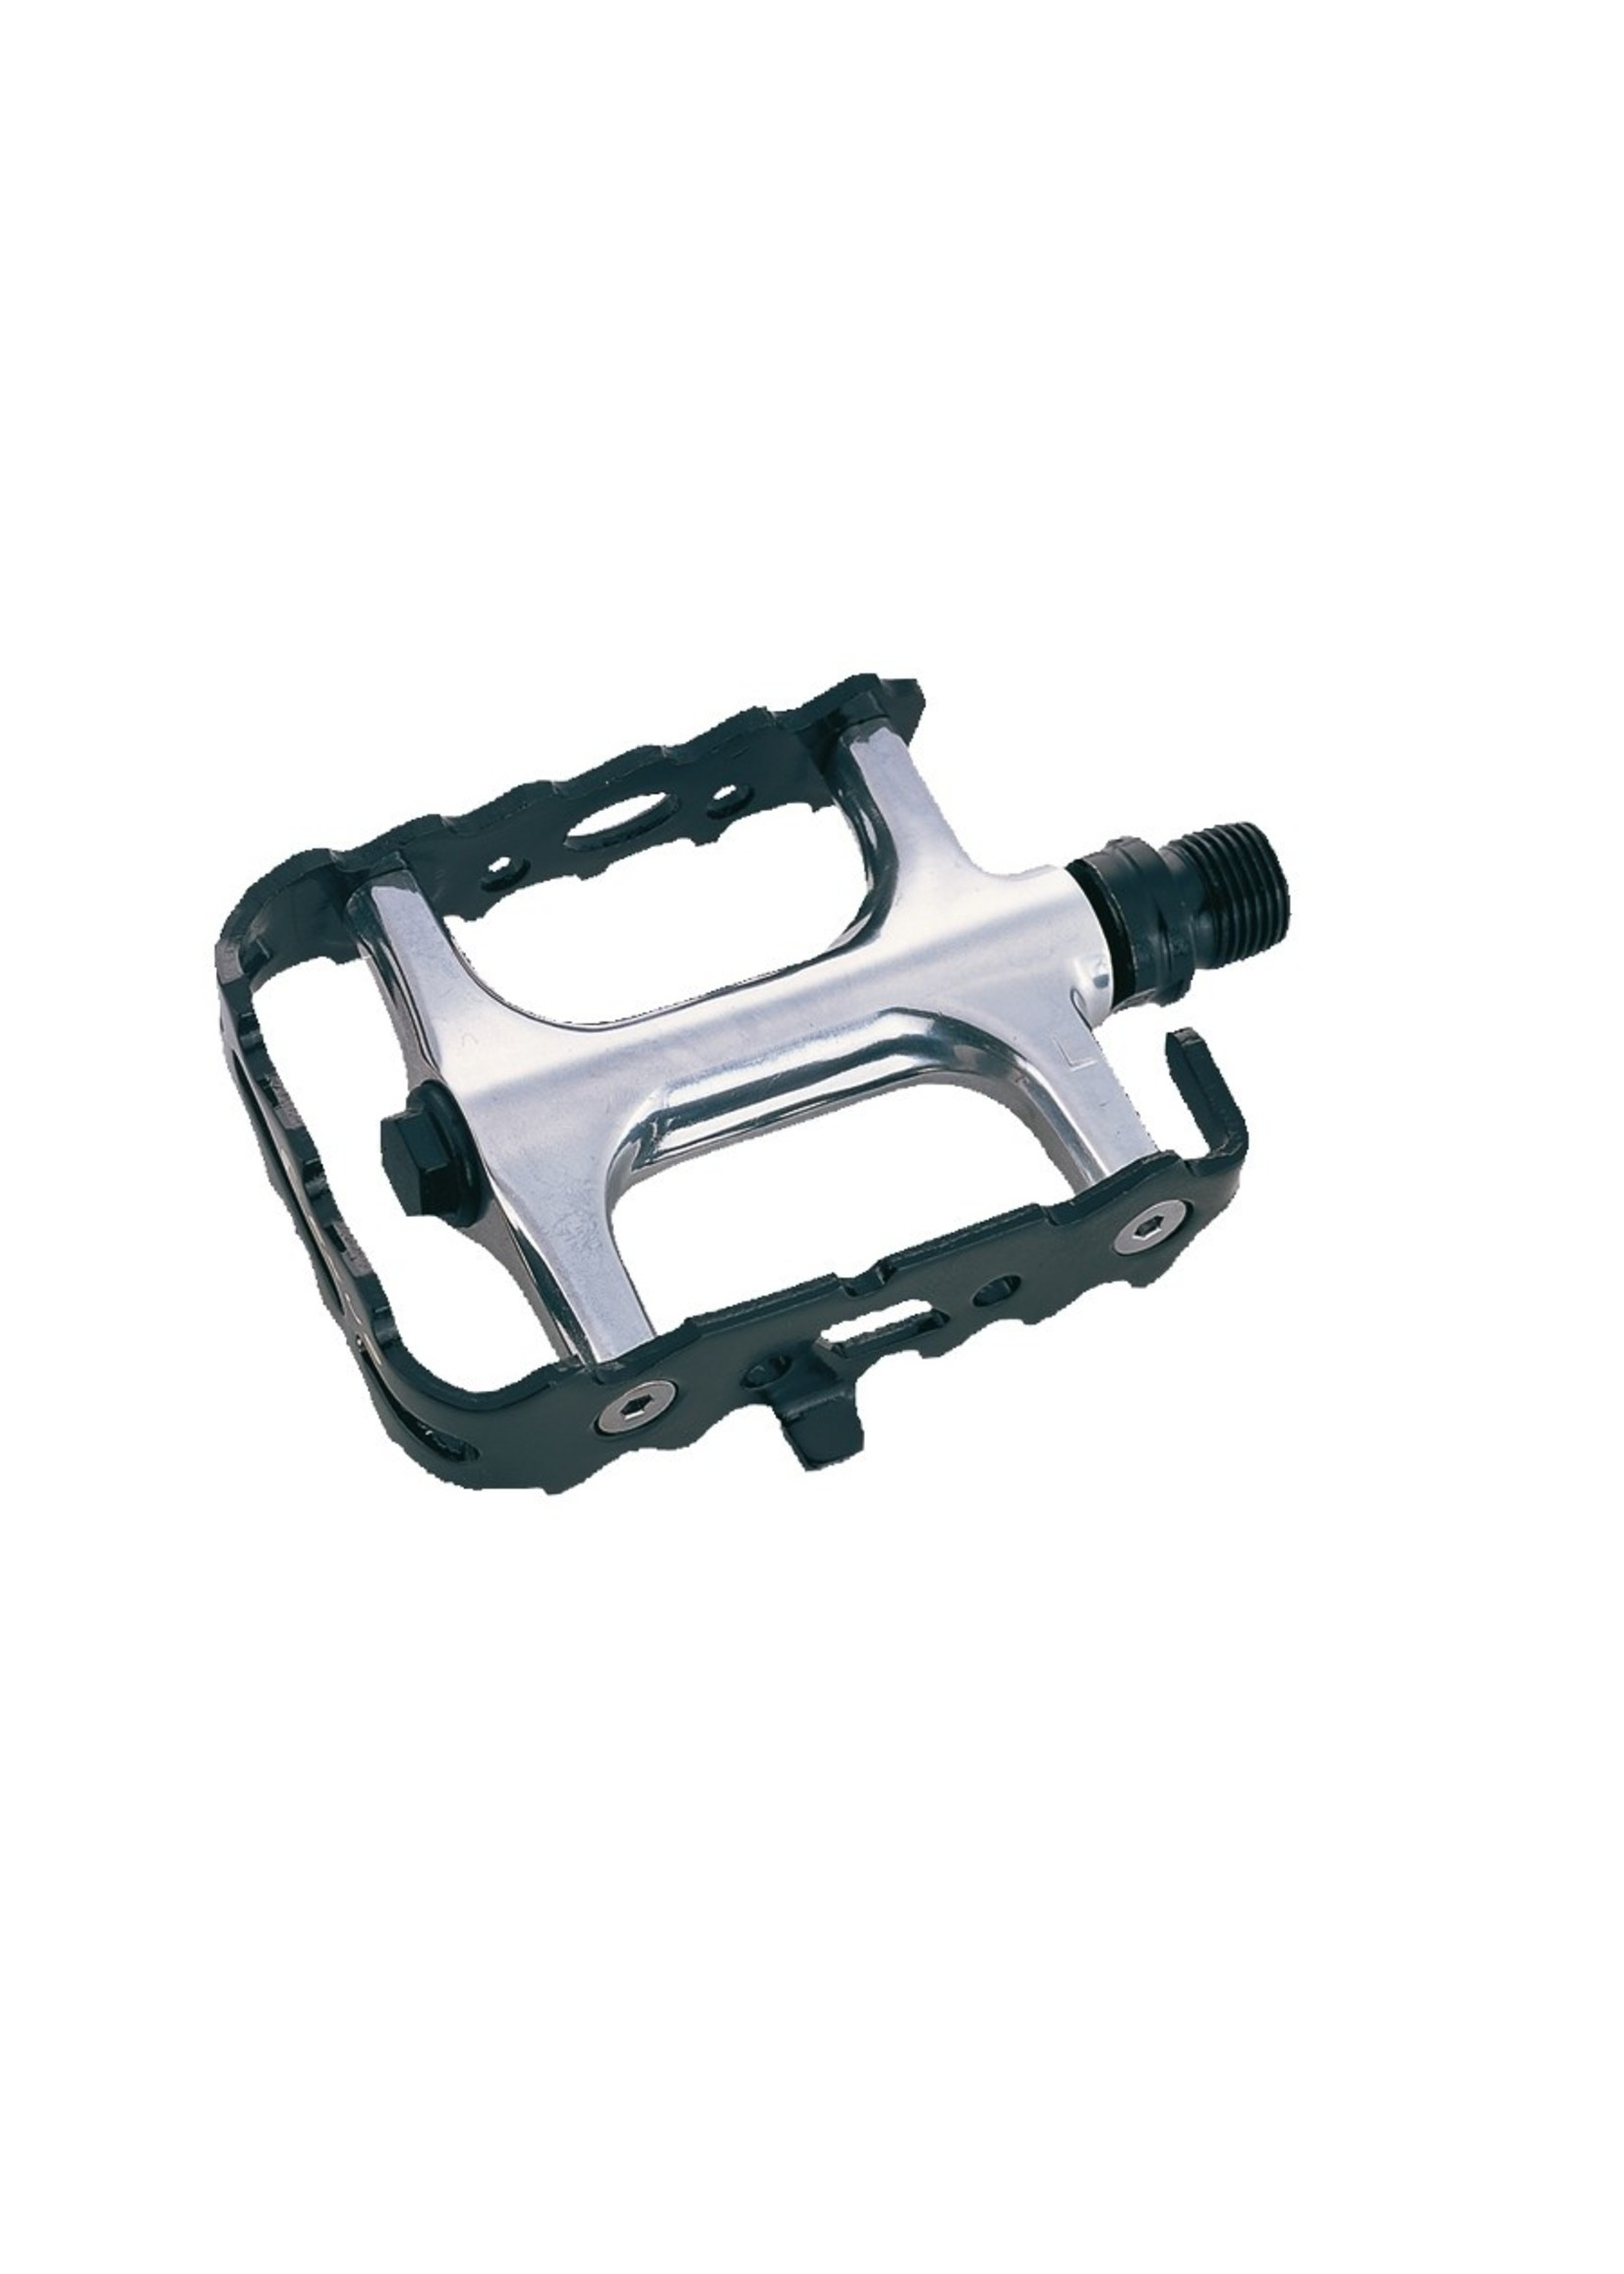 SystemEX M1500 Pedals